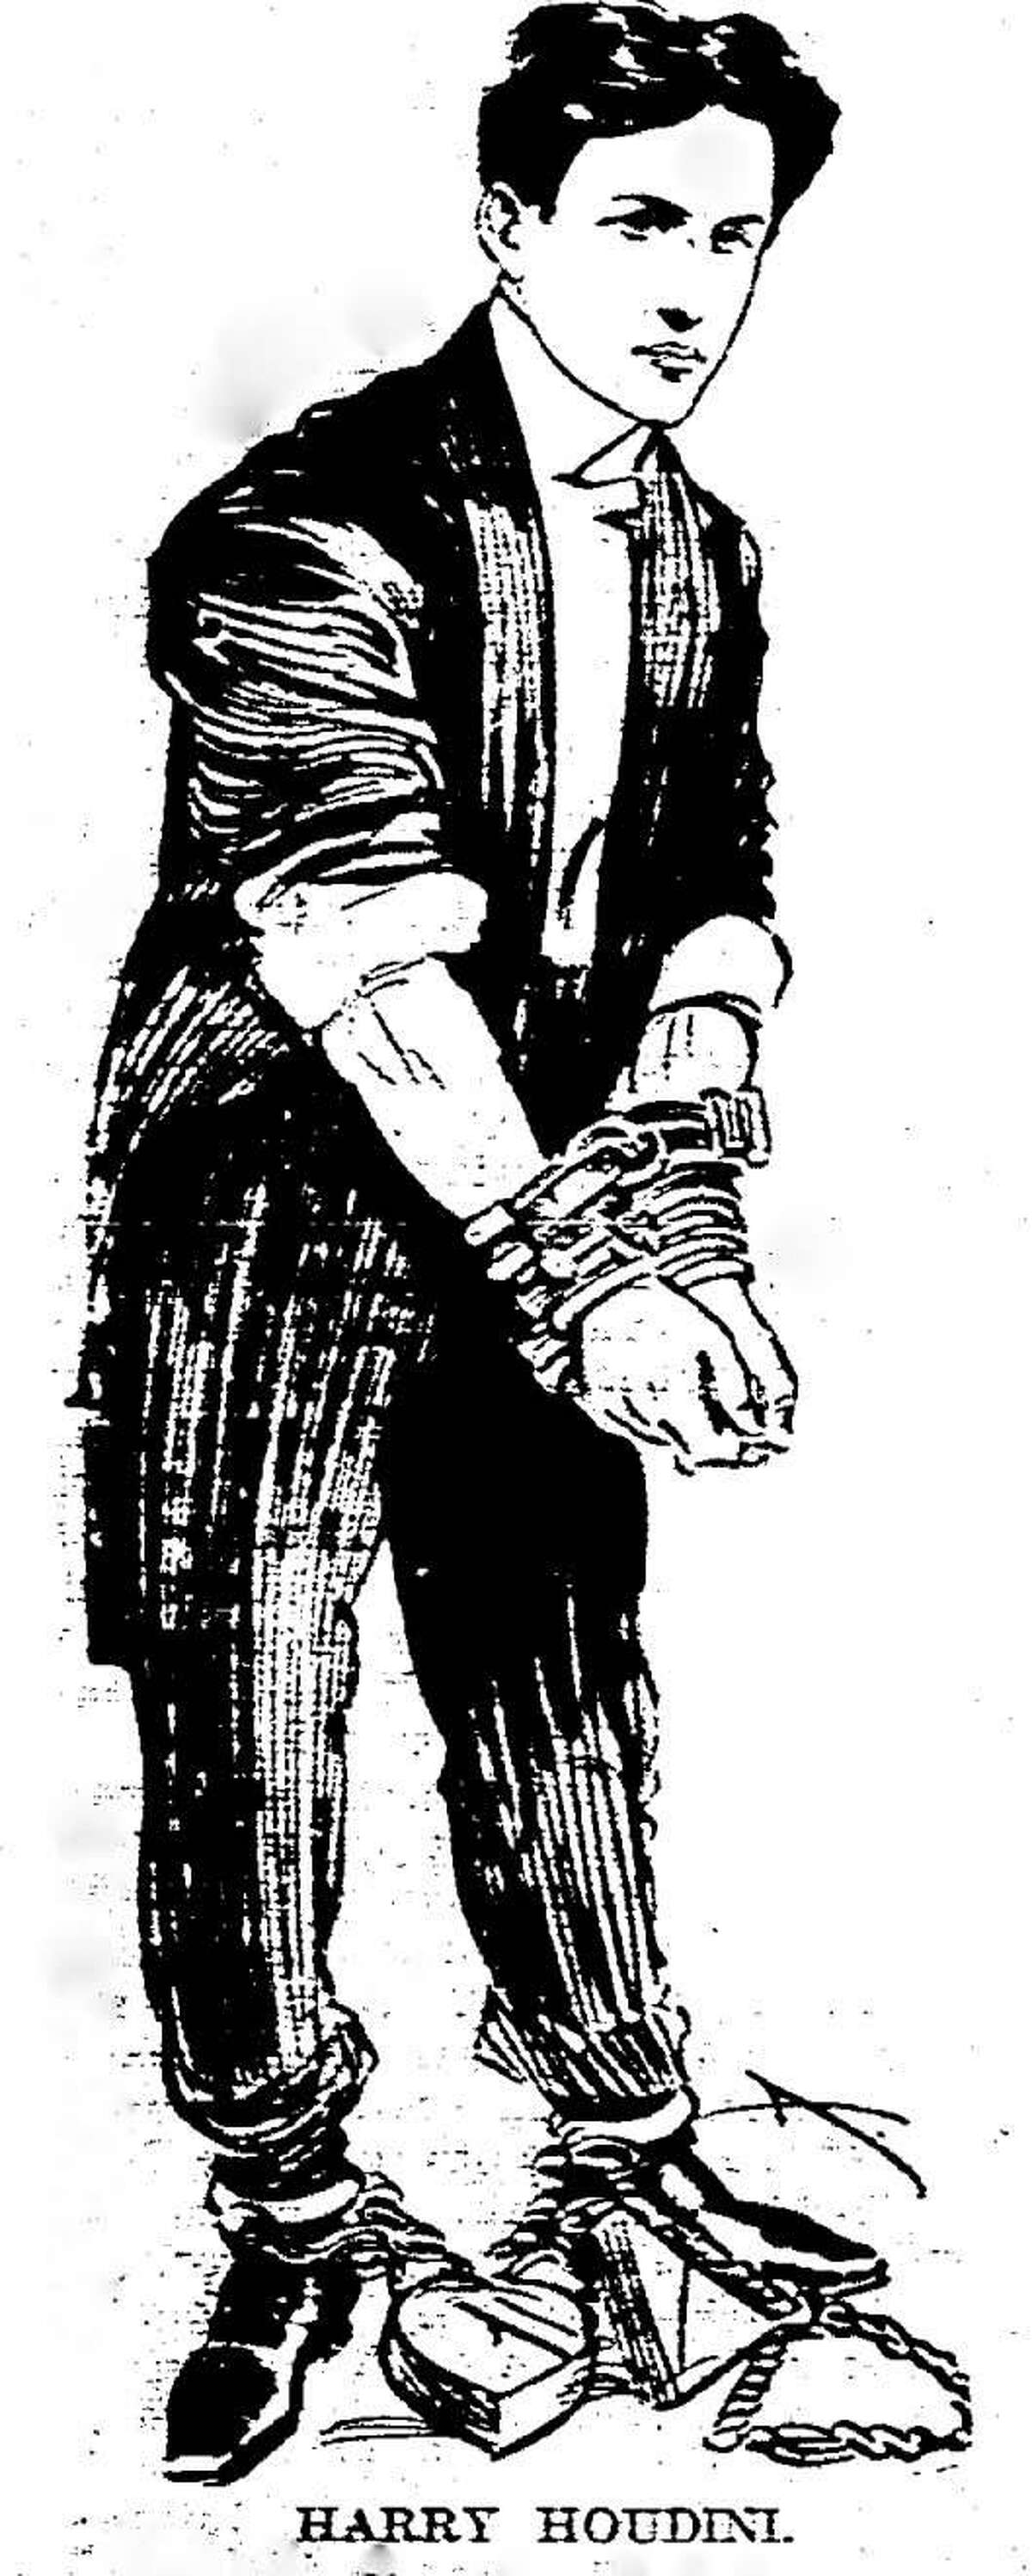 An illustration of Houdini that was published in the Aug. 12, 1905 Daily Advocate, which reported that the magician had bought a home in Stamford, Connecticut.